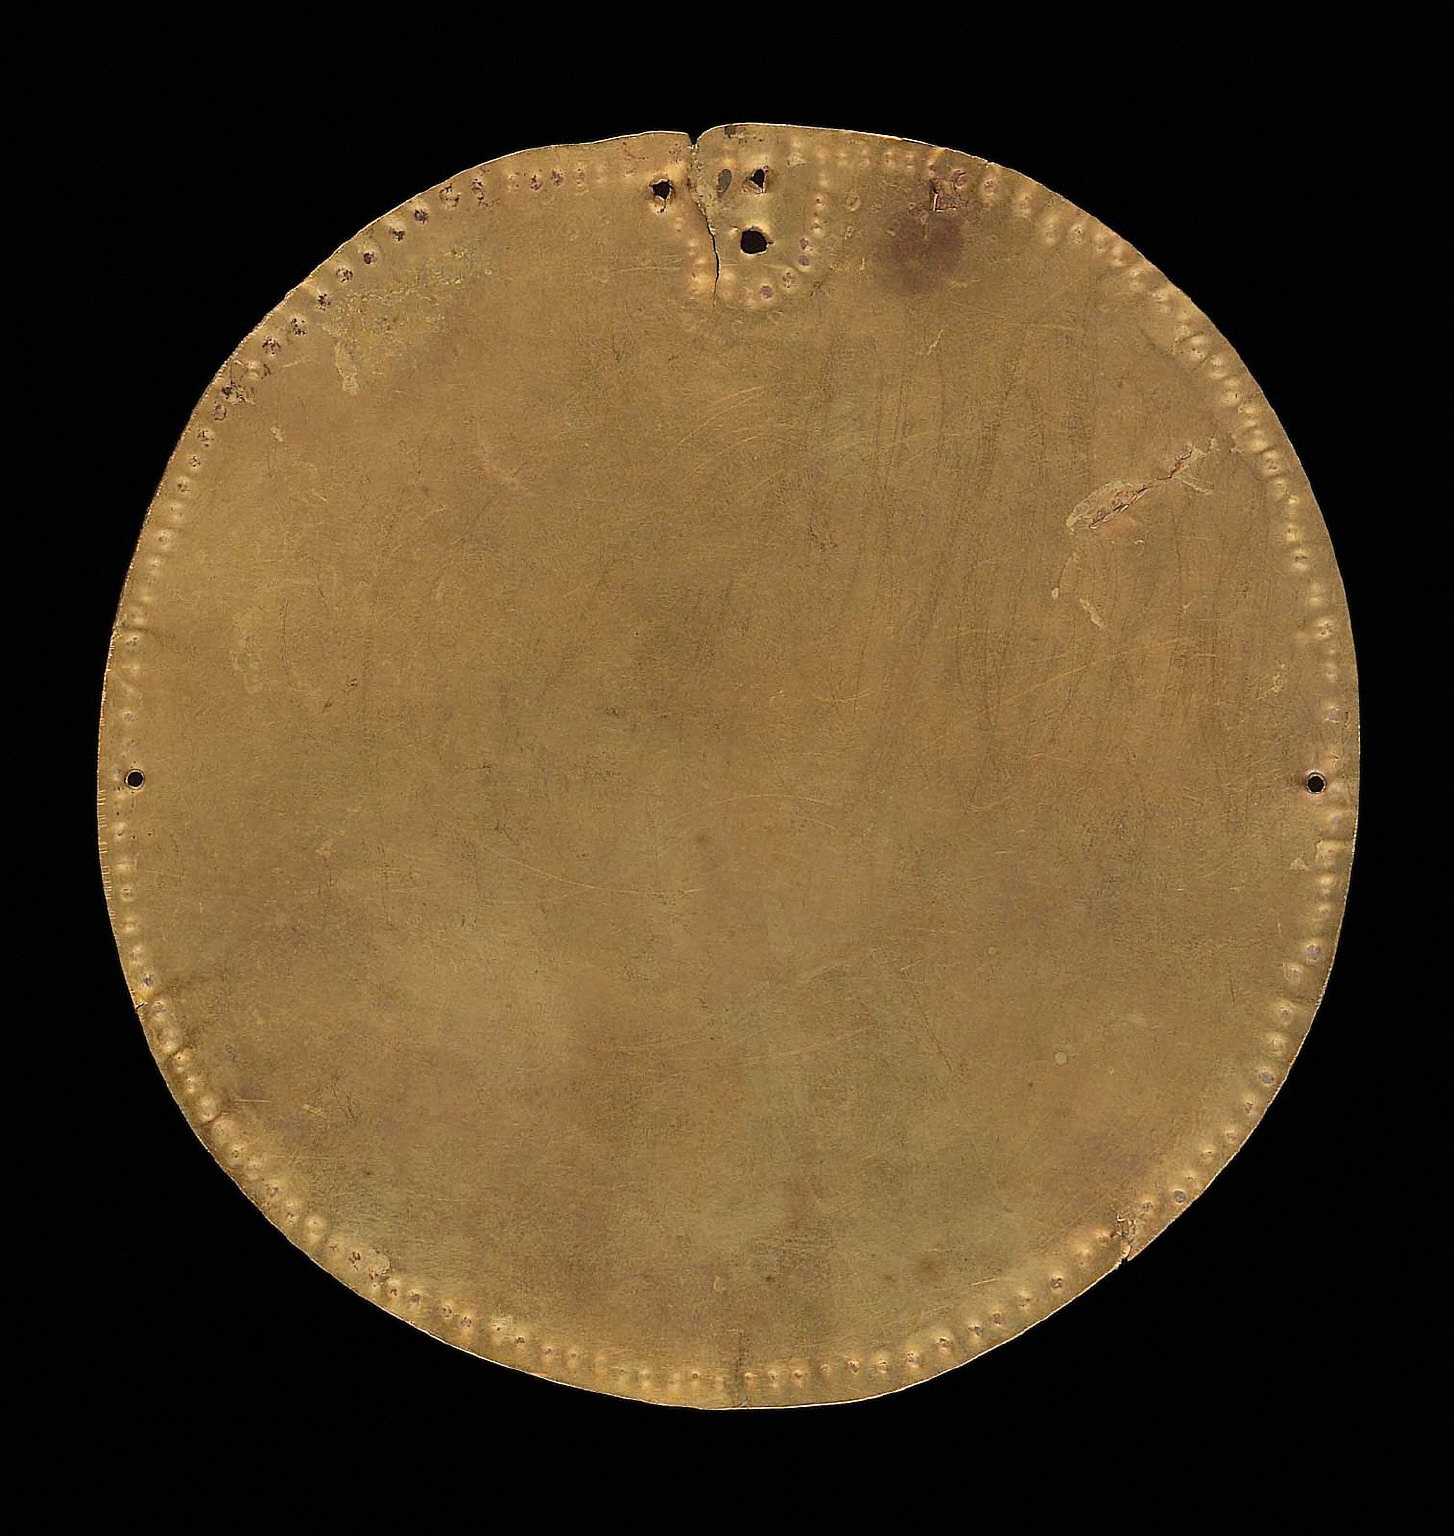 Embossed gold disk